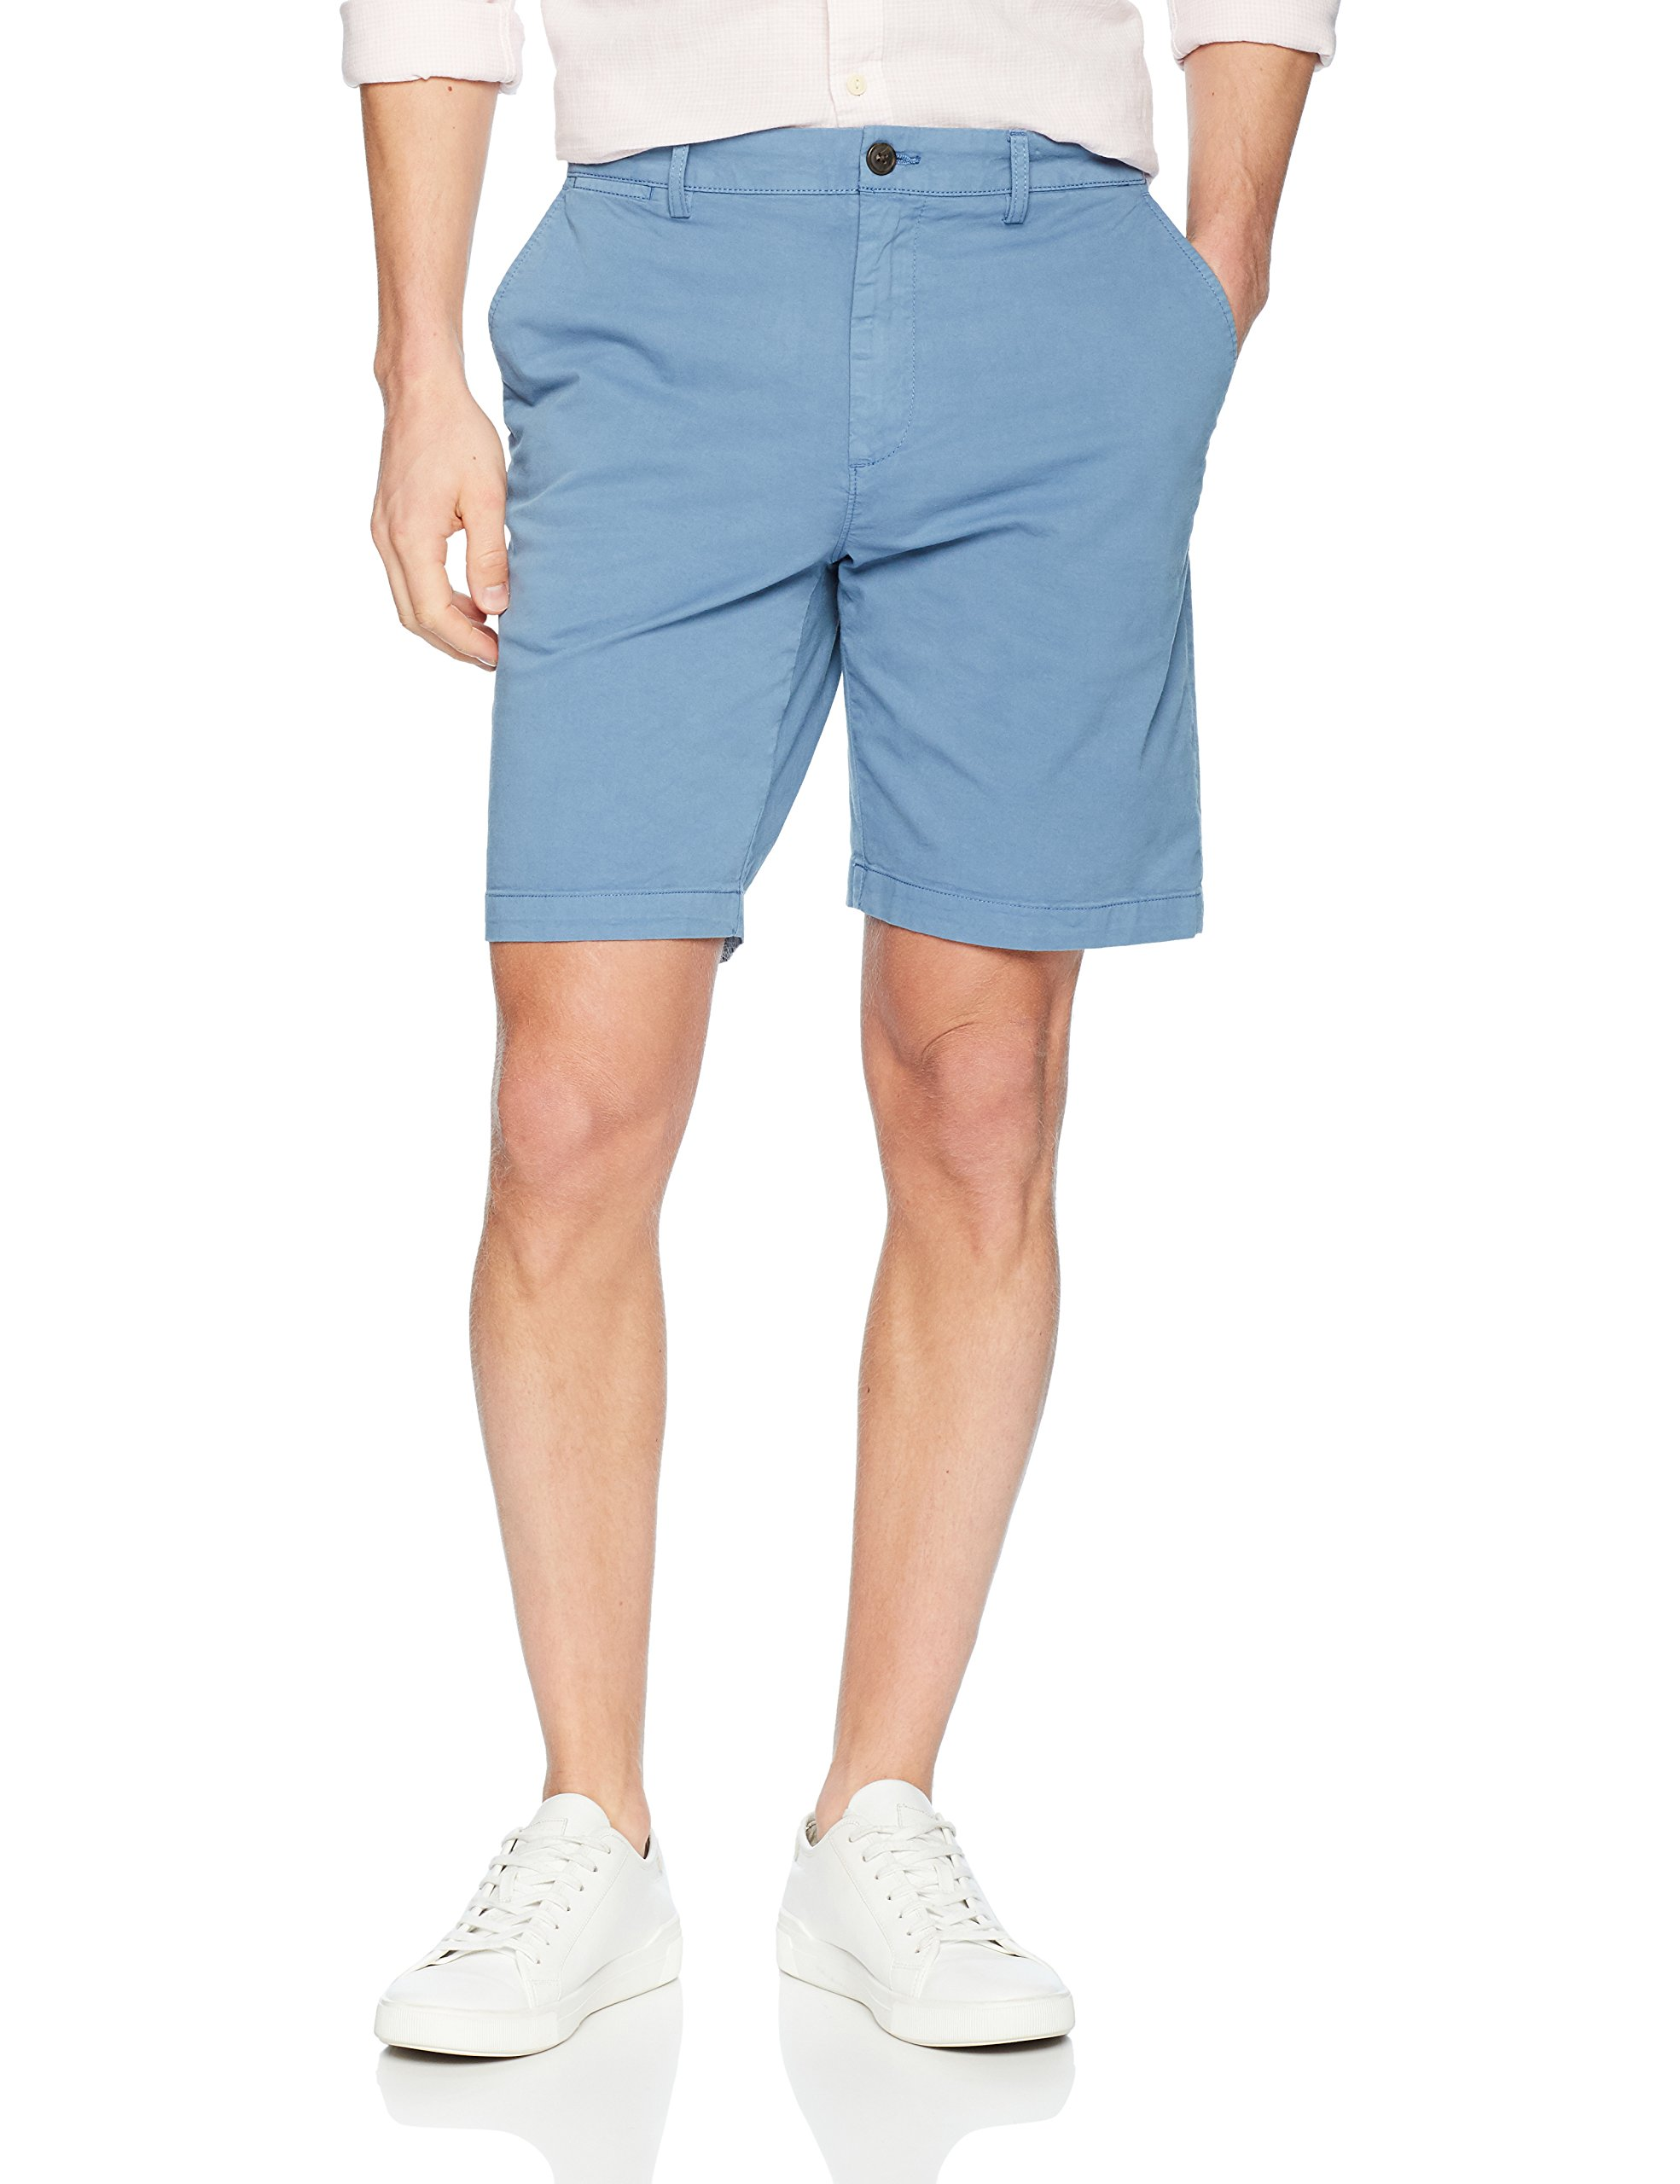 Goodthreads Men's 9'' Inseam Flat-Front Stretch Chino Shorts, Moonlight Blue, 36